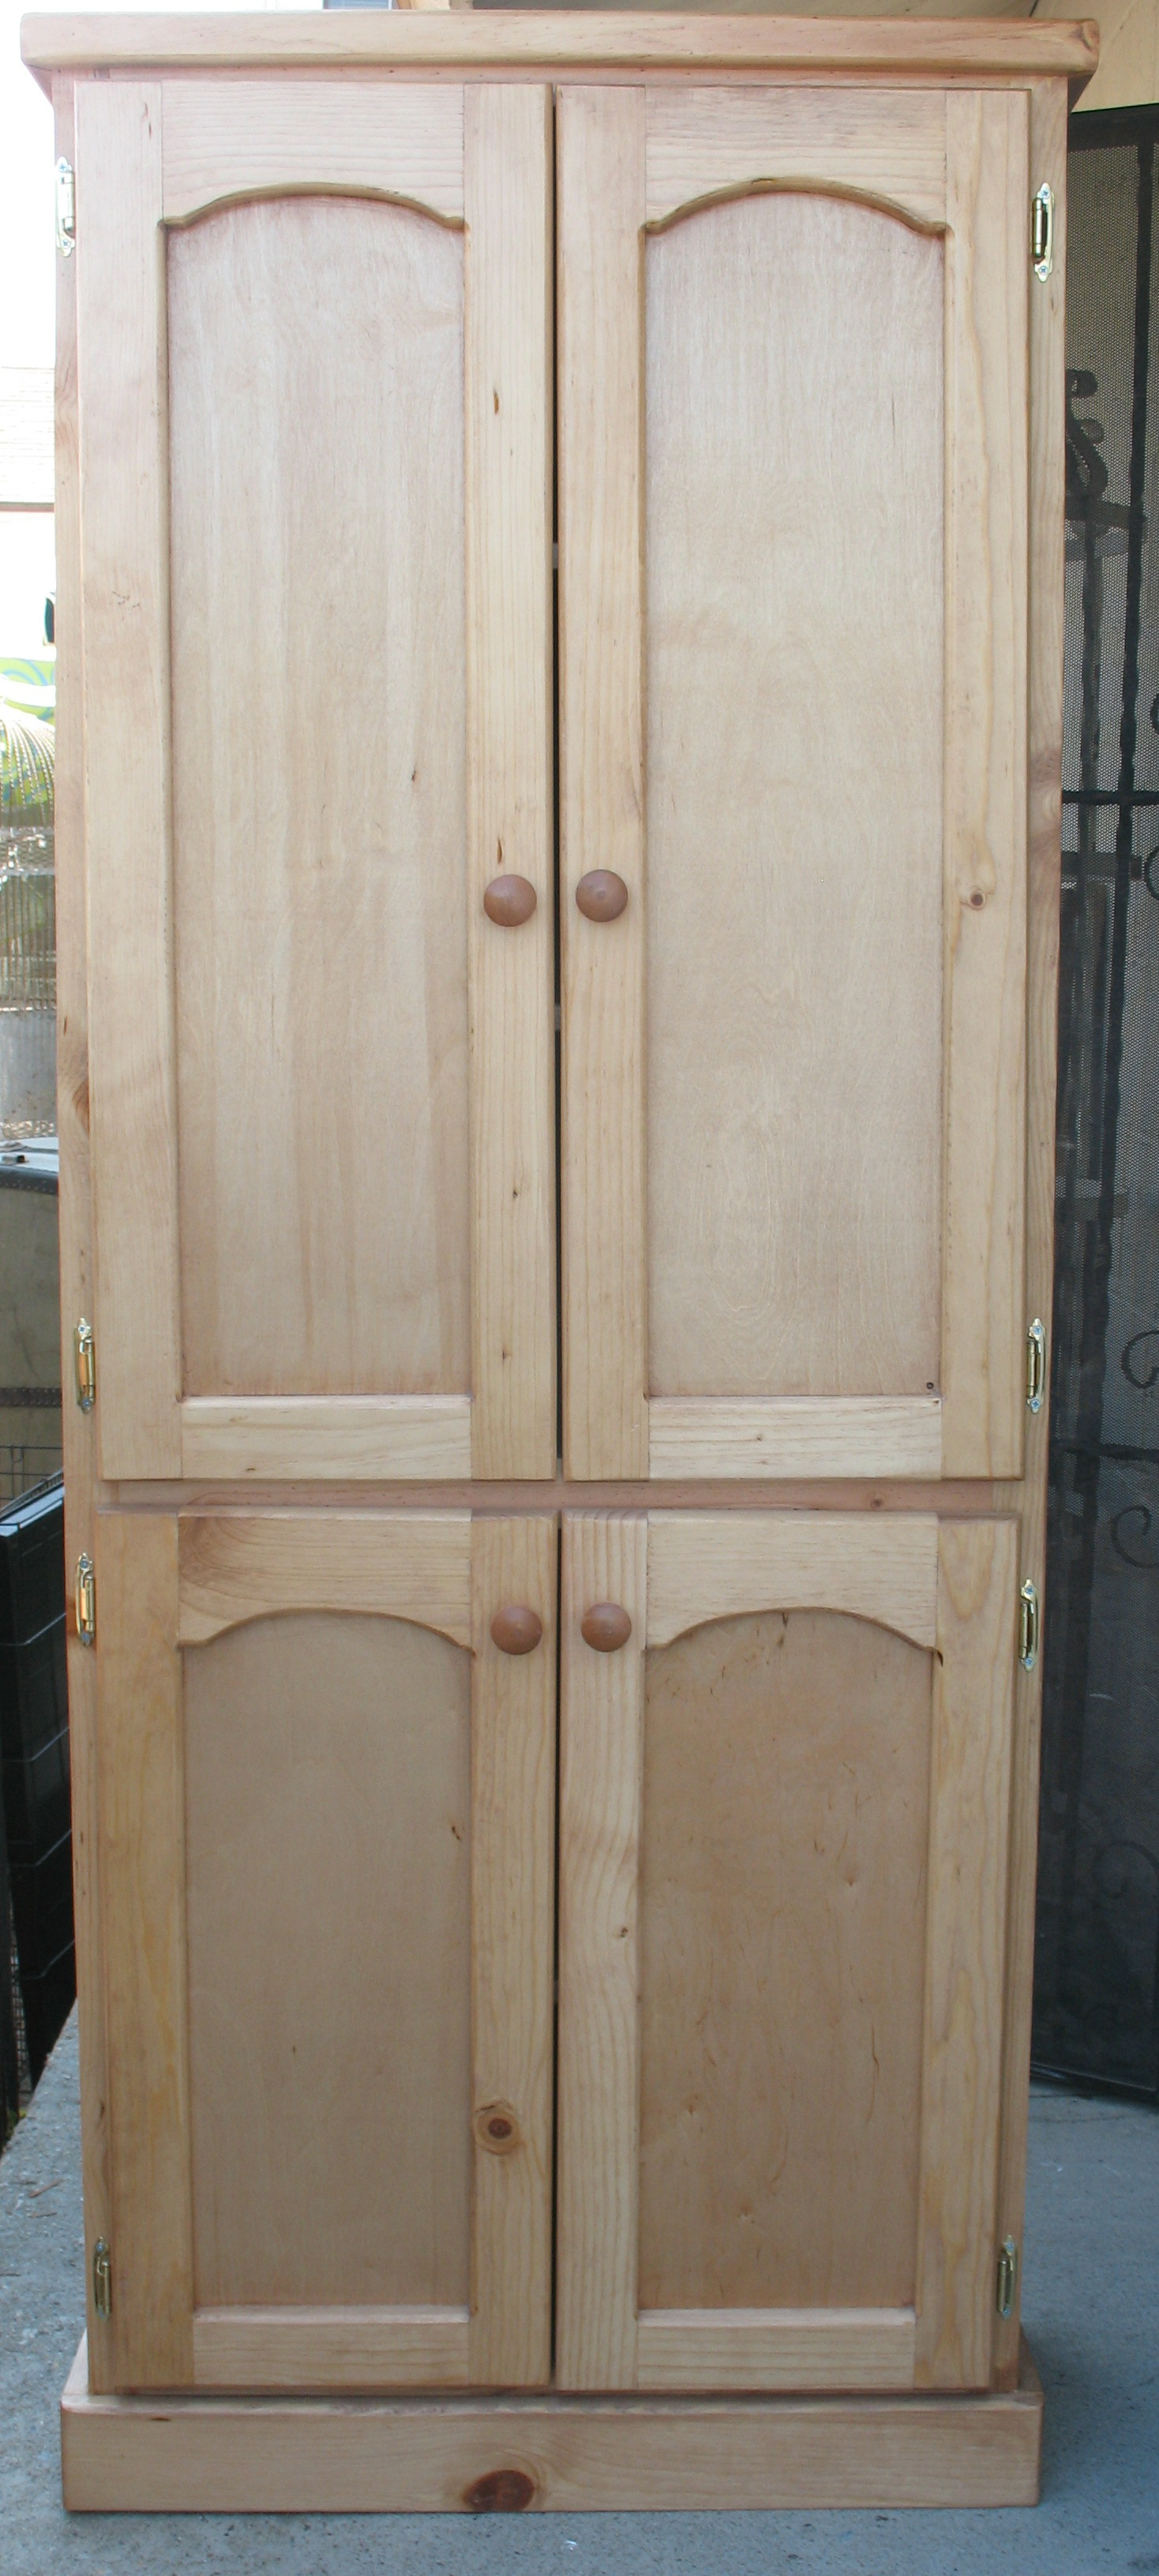 Wooden Storage Cabinets ~ Ready made cabinet with doors